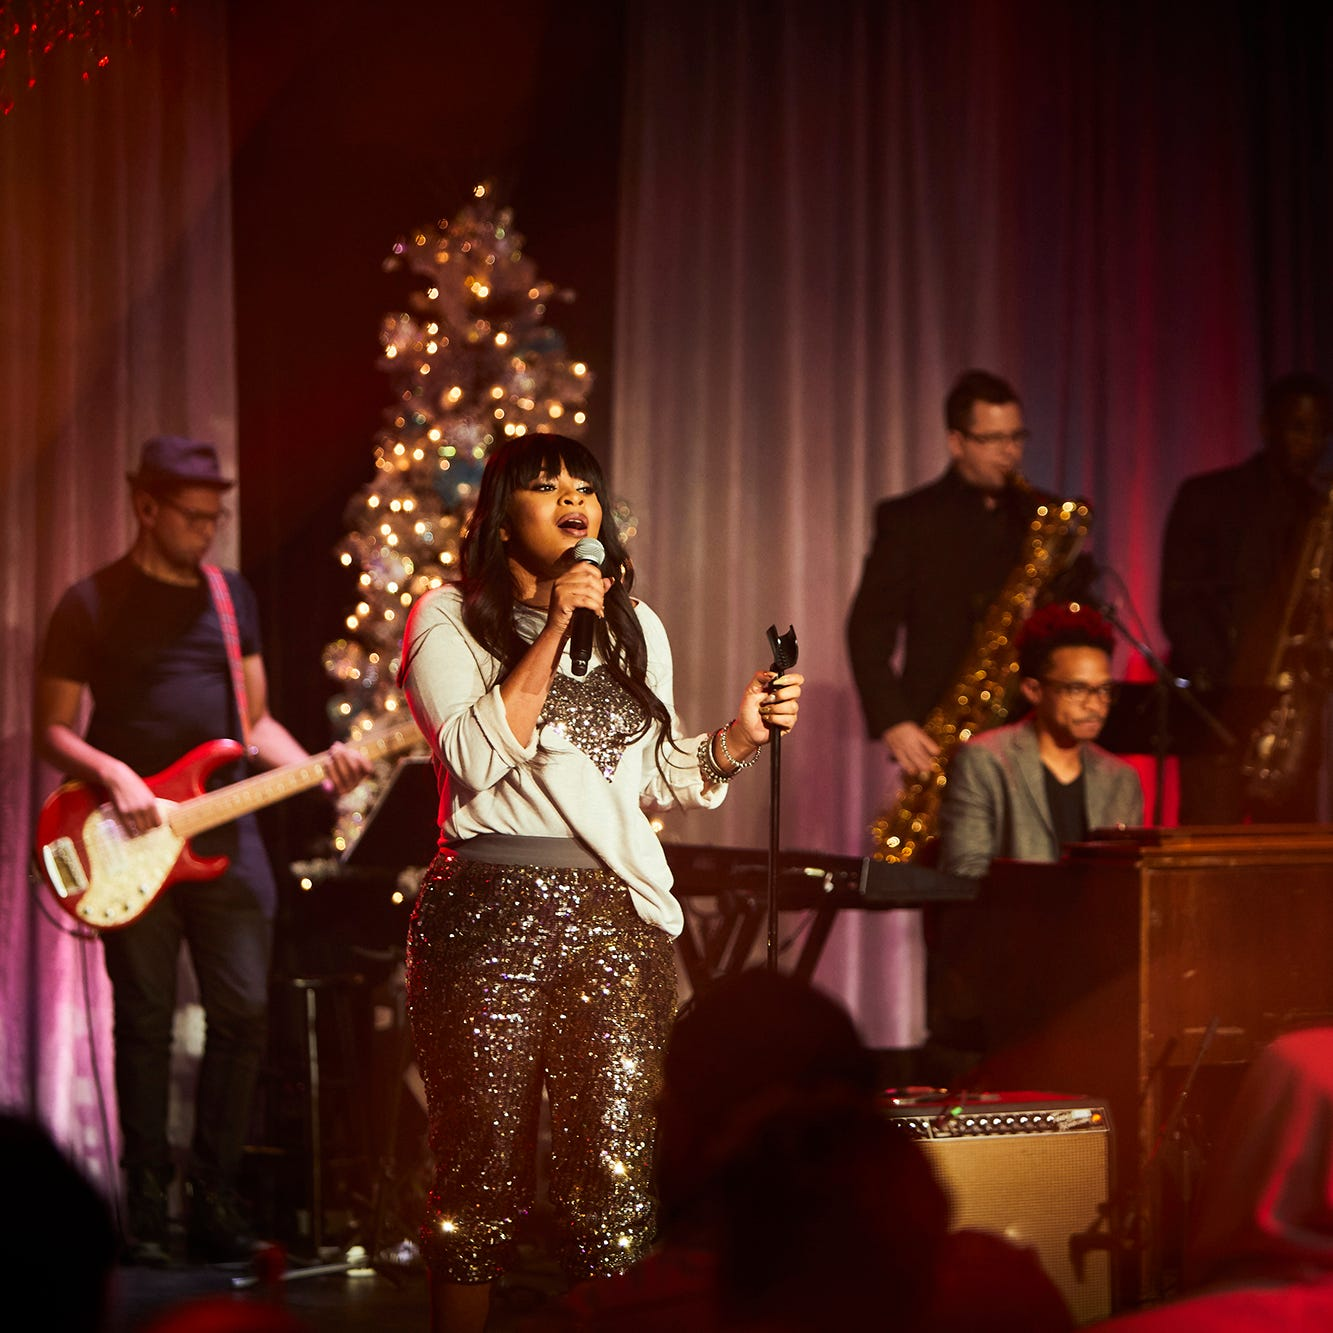 After record-breaking year, Koryn Hawthorne has Christmas singles, TV special